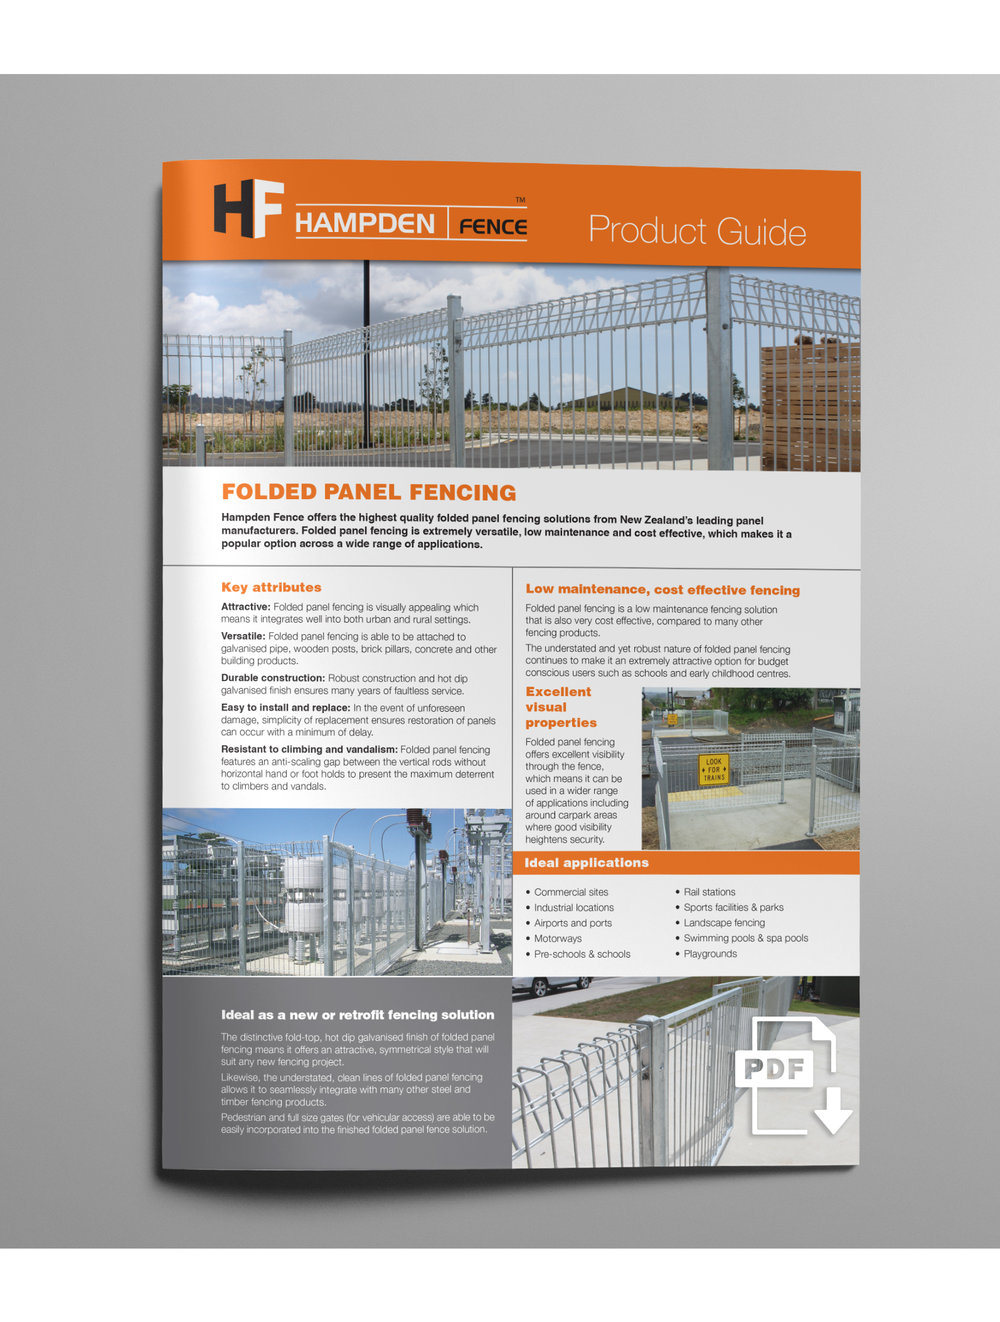 FOLDED PANEL FENCING